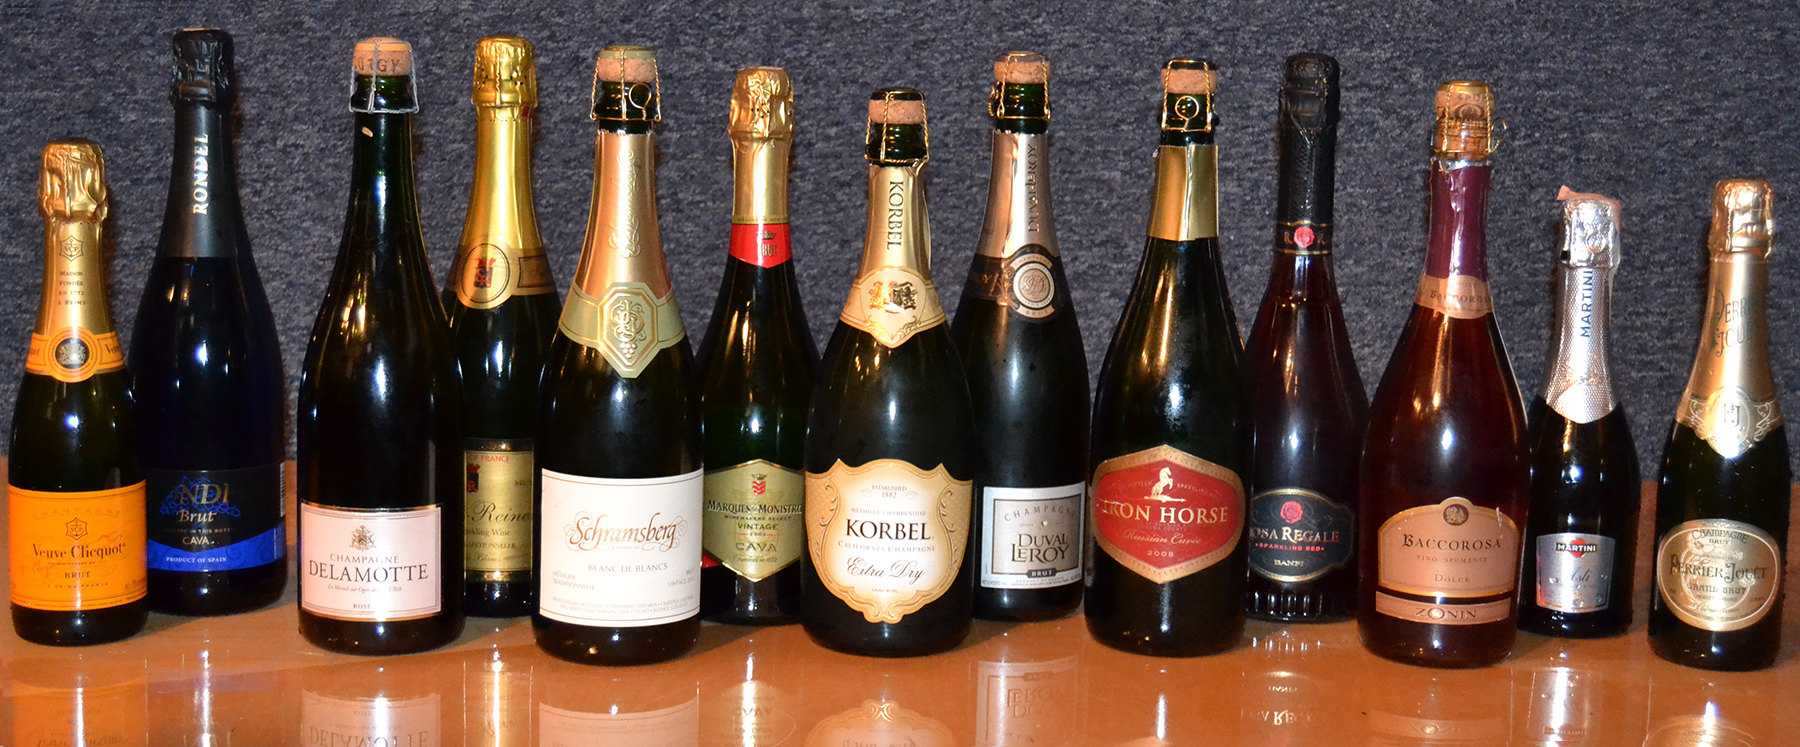 The Champagnes we are sampling